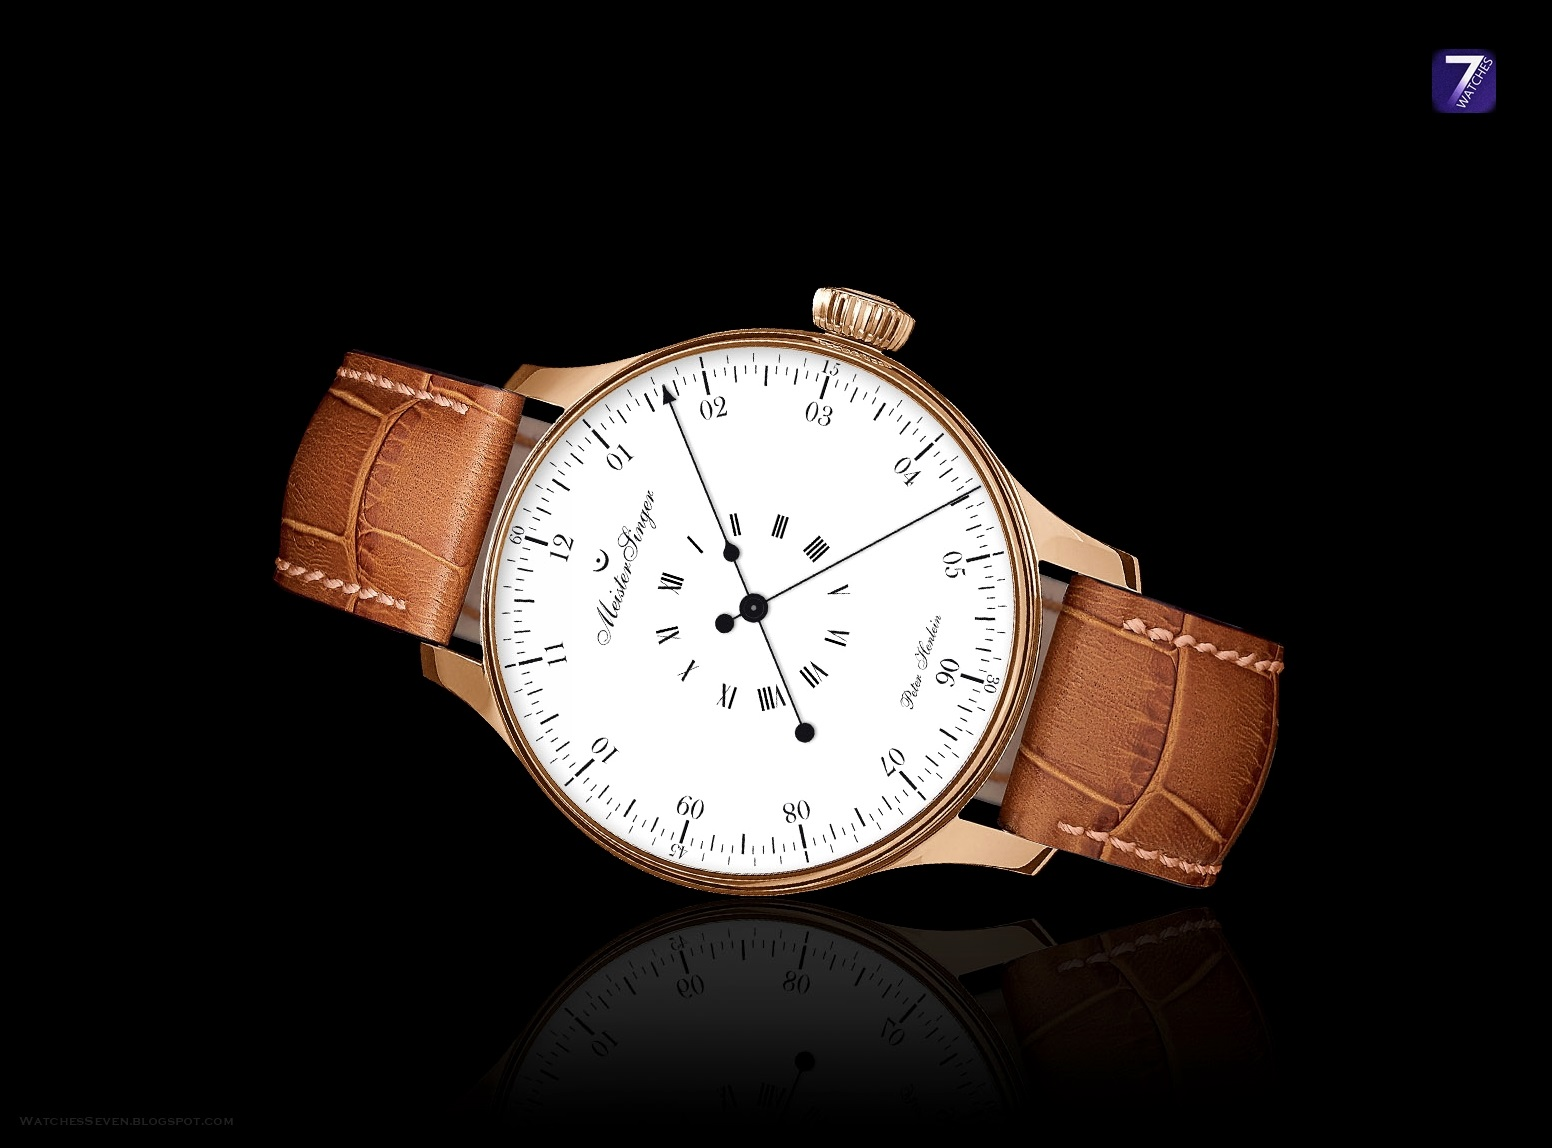 Watches 7: MeisterSinger – Peter Henlein Gold Limited Edition